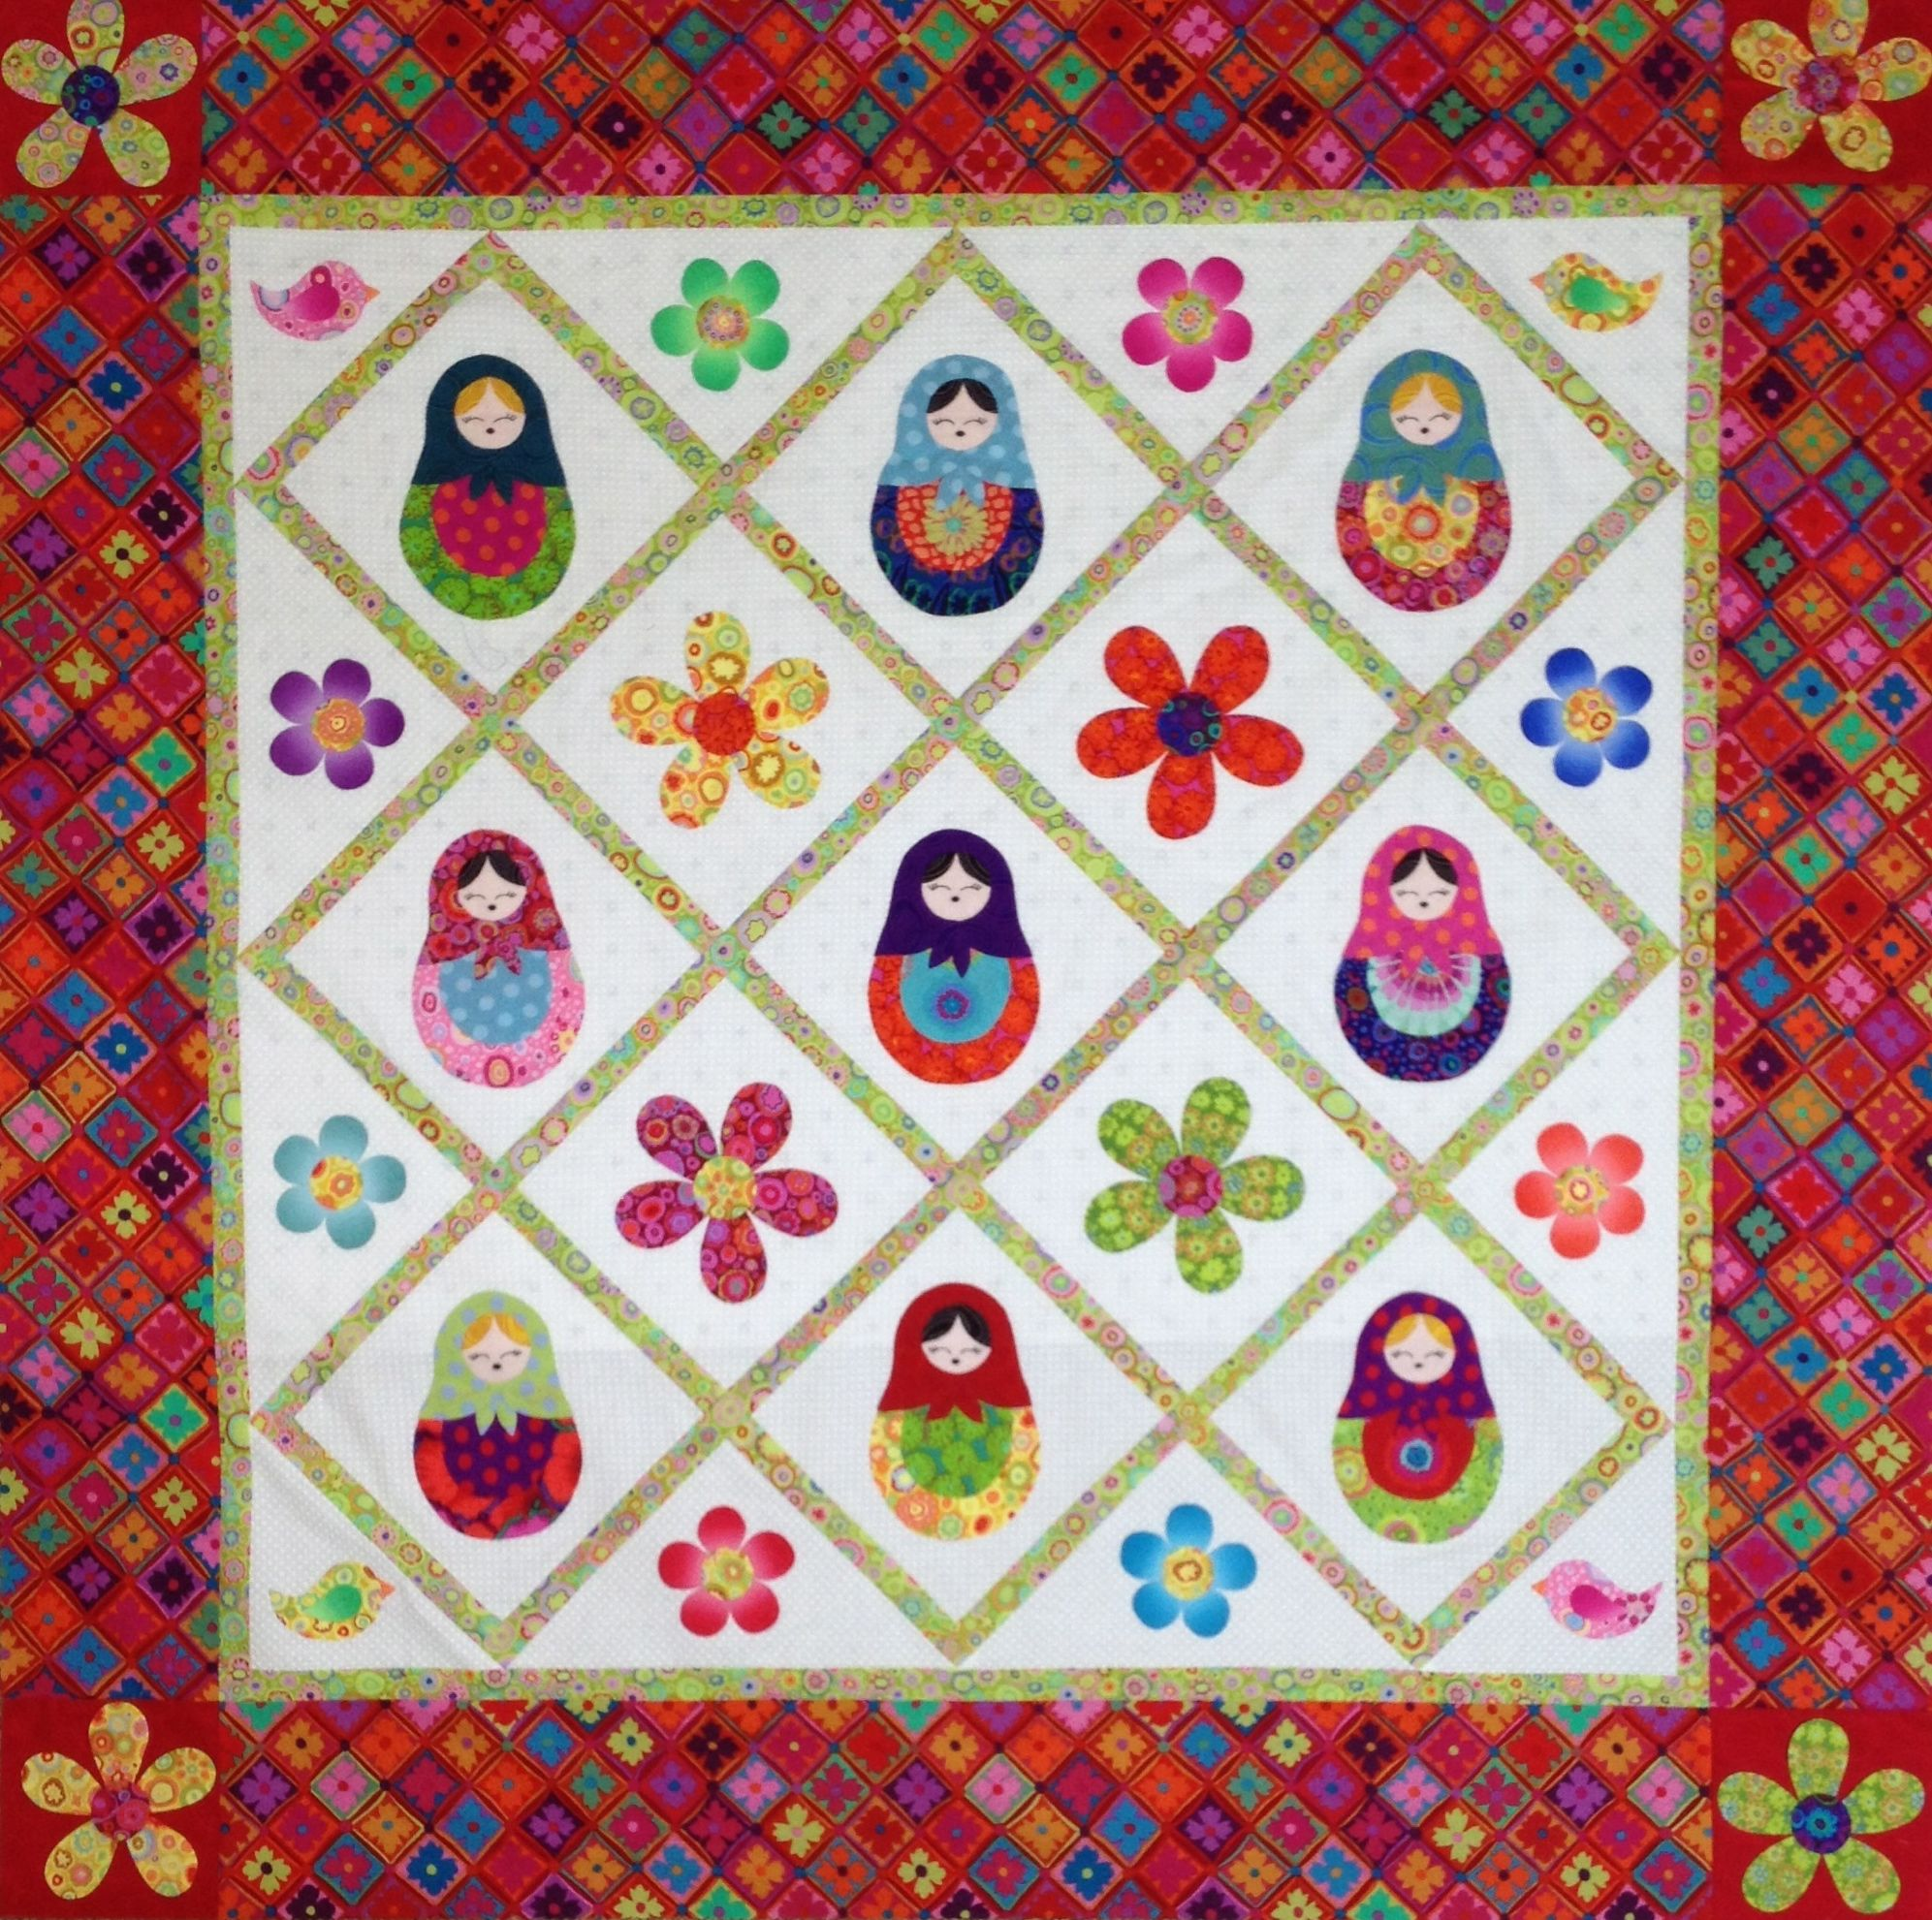 Matryoshka Russian Nesting Doll Quilt Original pattern for sale by ... : doll quilts for sale - Adamdwight.com